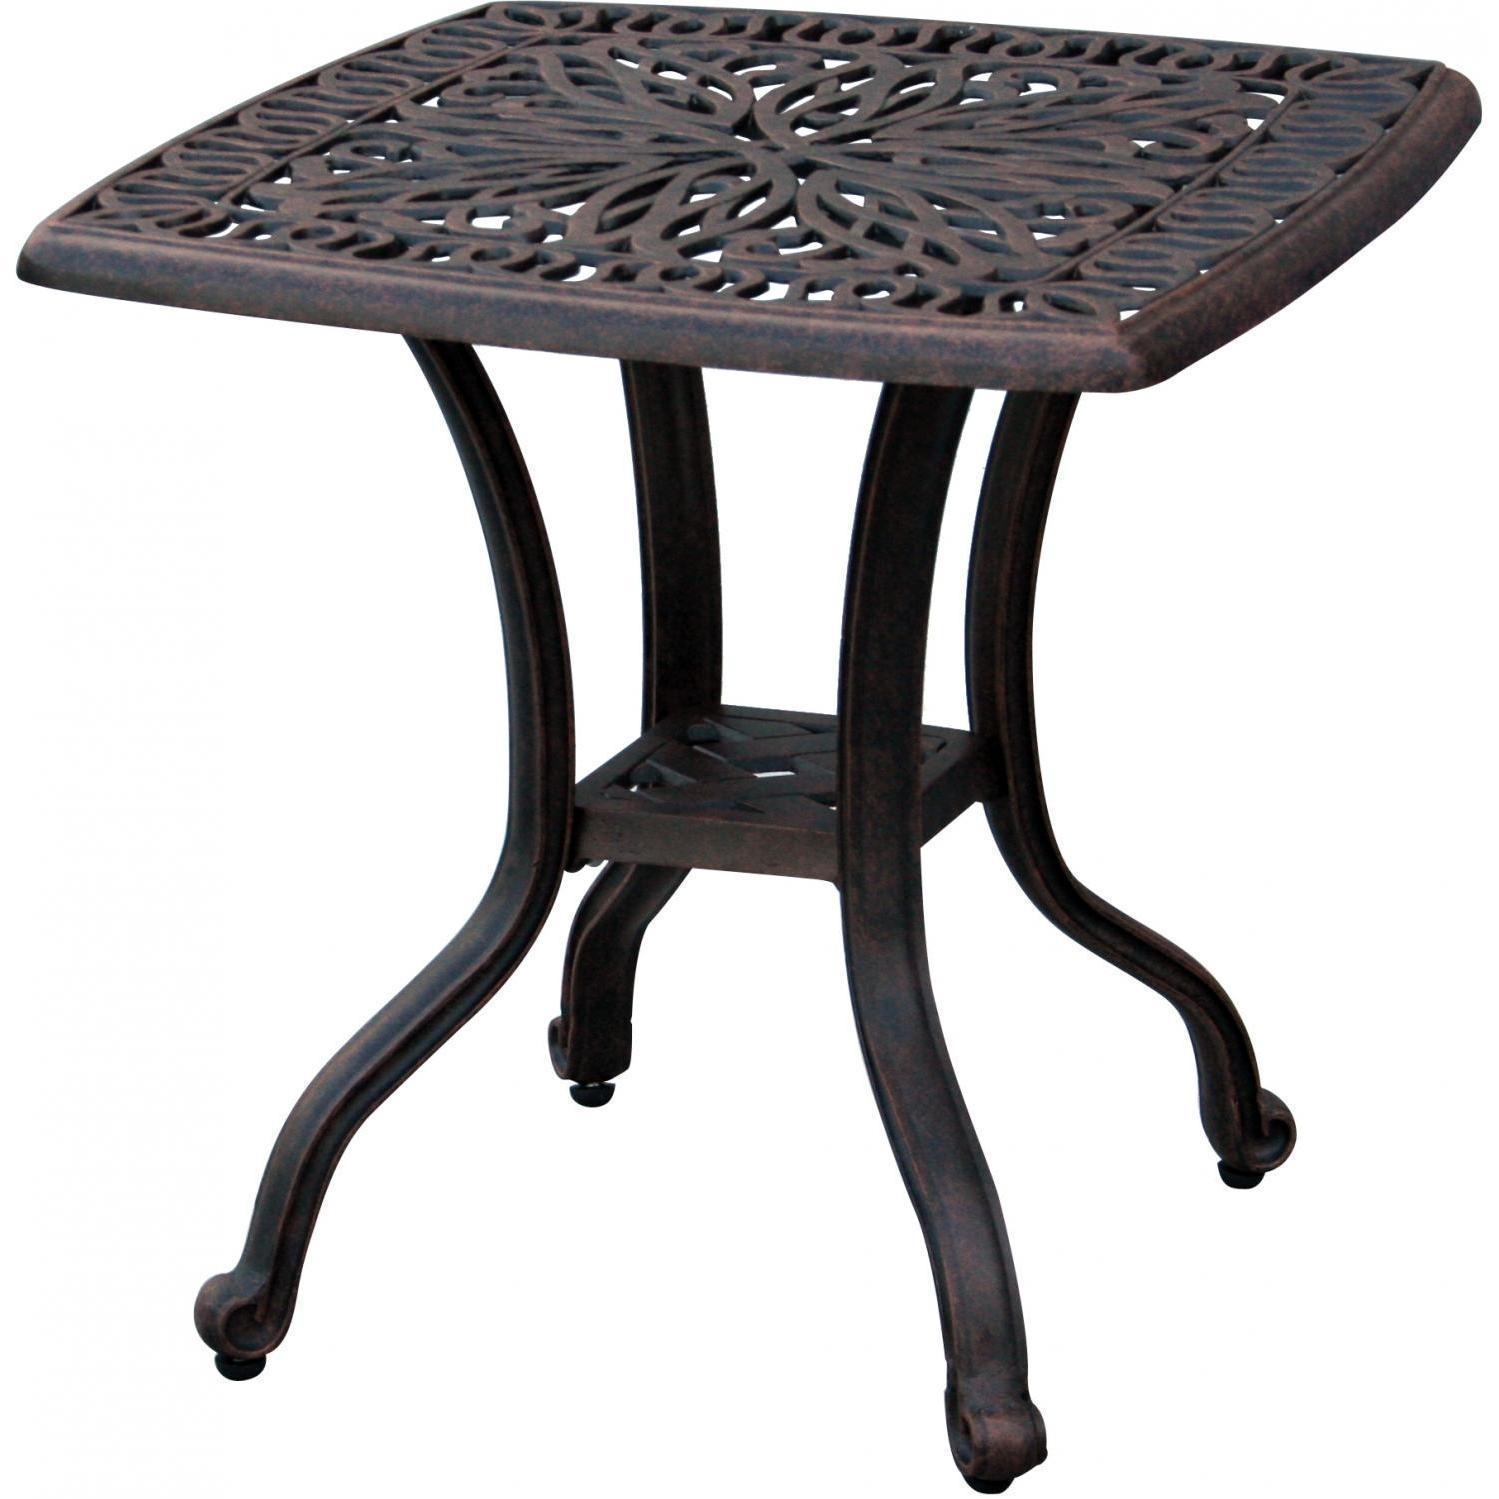 darlee elisabeth piece cast aluminum patio conversation seating umbrella accent table set end with ice bucket insert bbq guys home goods chairs woven furniture target black rustic